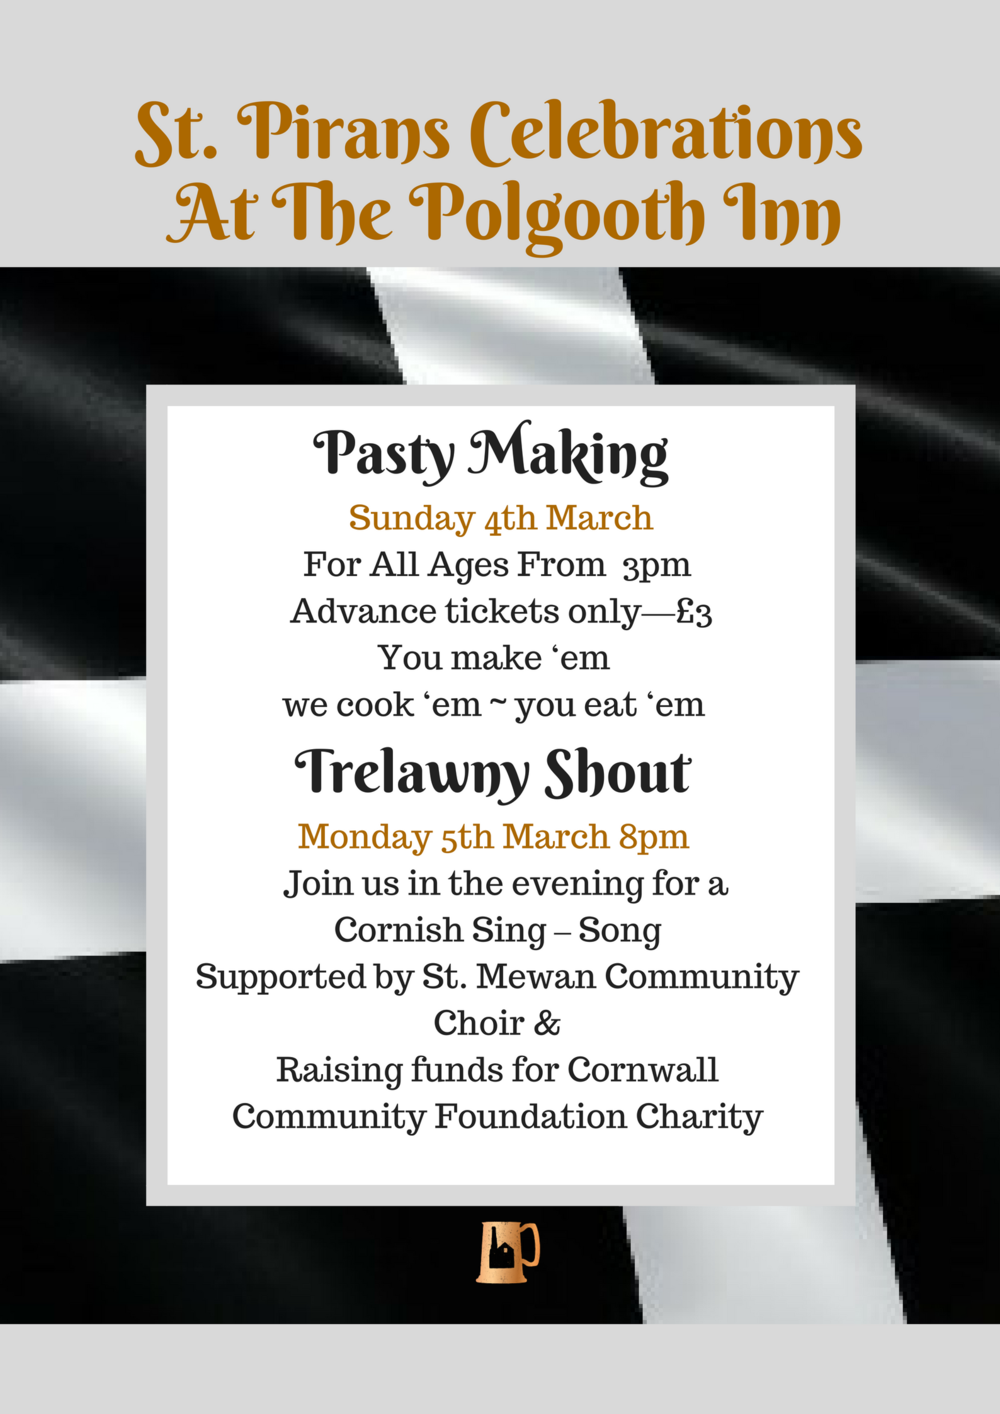 St. Pirans Day Celebrations.png